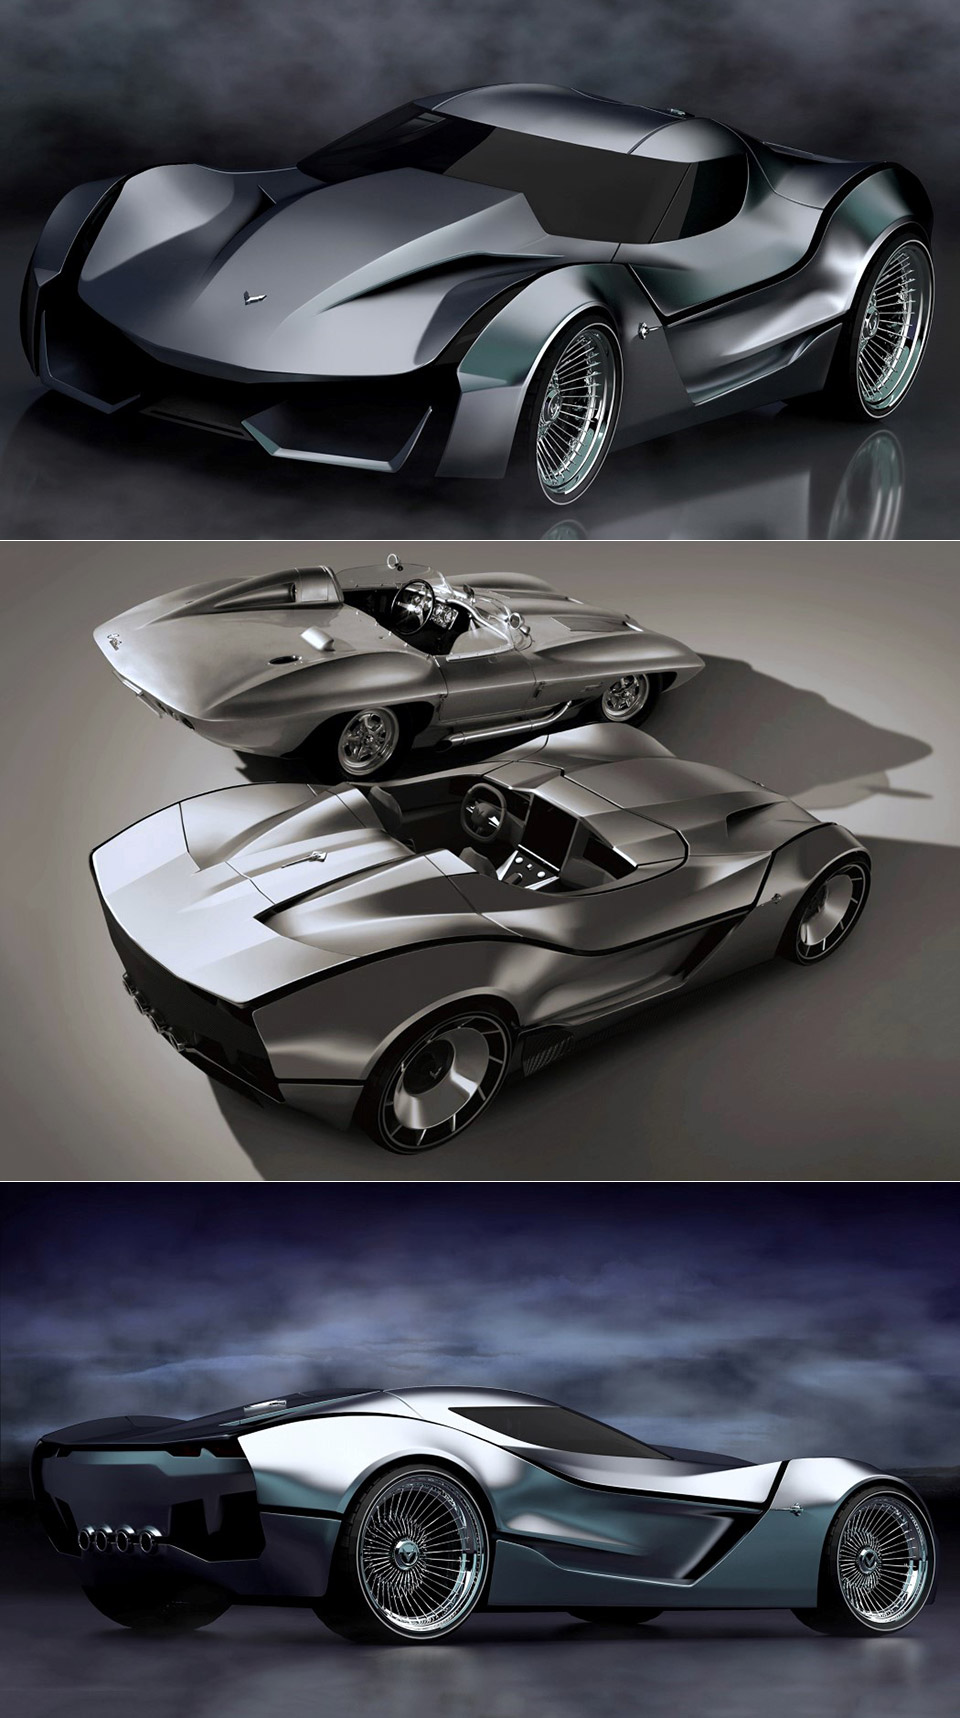 2019 Corvette Stingray Concept